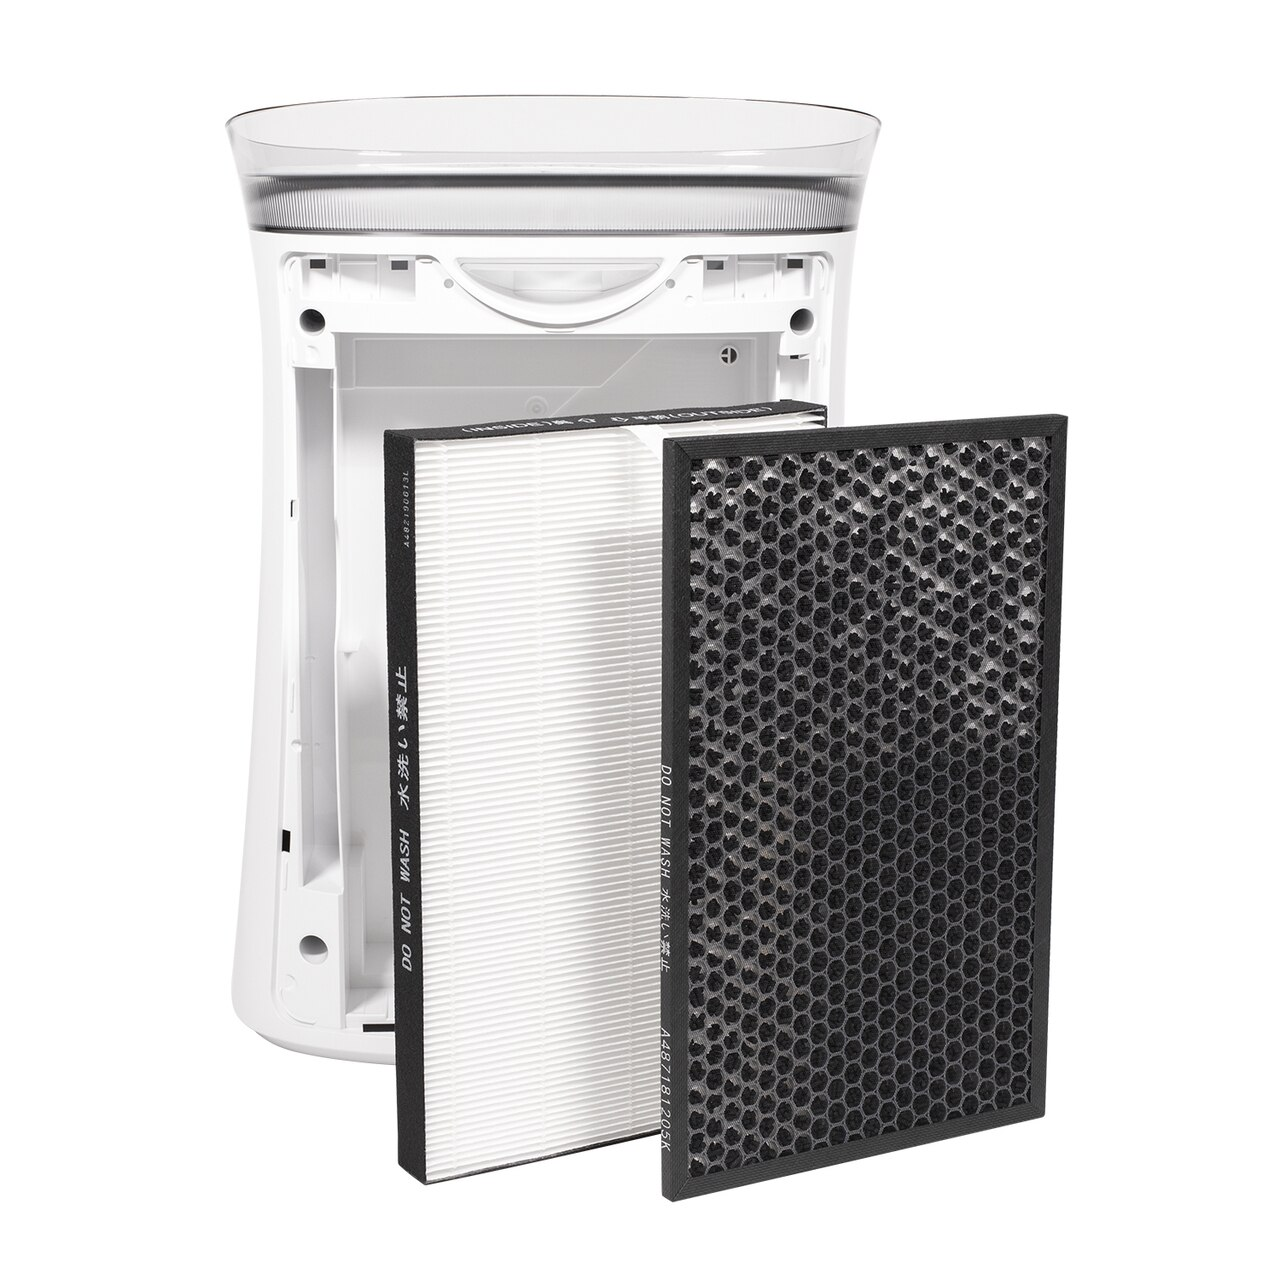 Sharp Air Purifier for Medium-Sized Rooms (FPK50UW) – back view with True HEPA filter and Active Carbon Filter